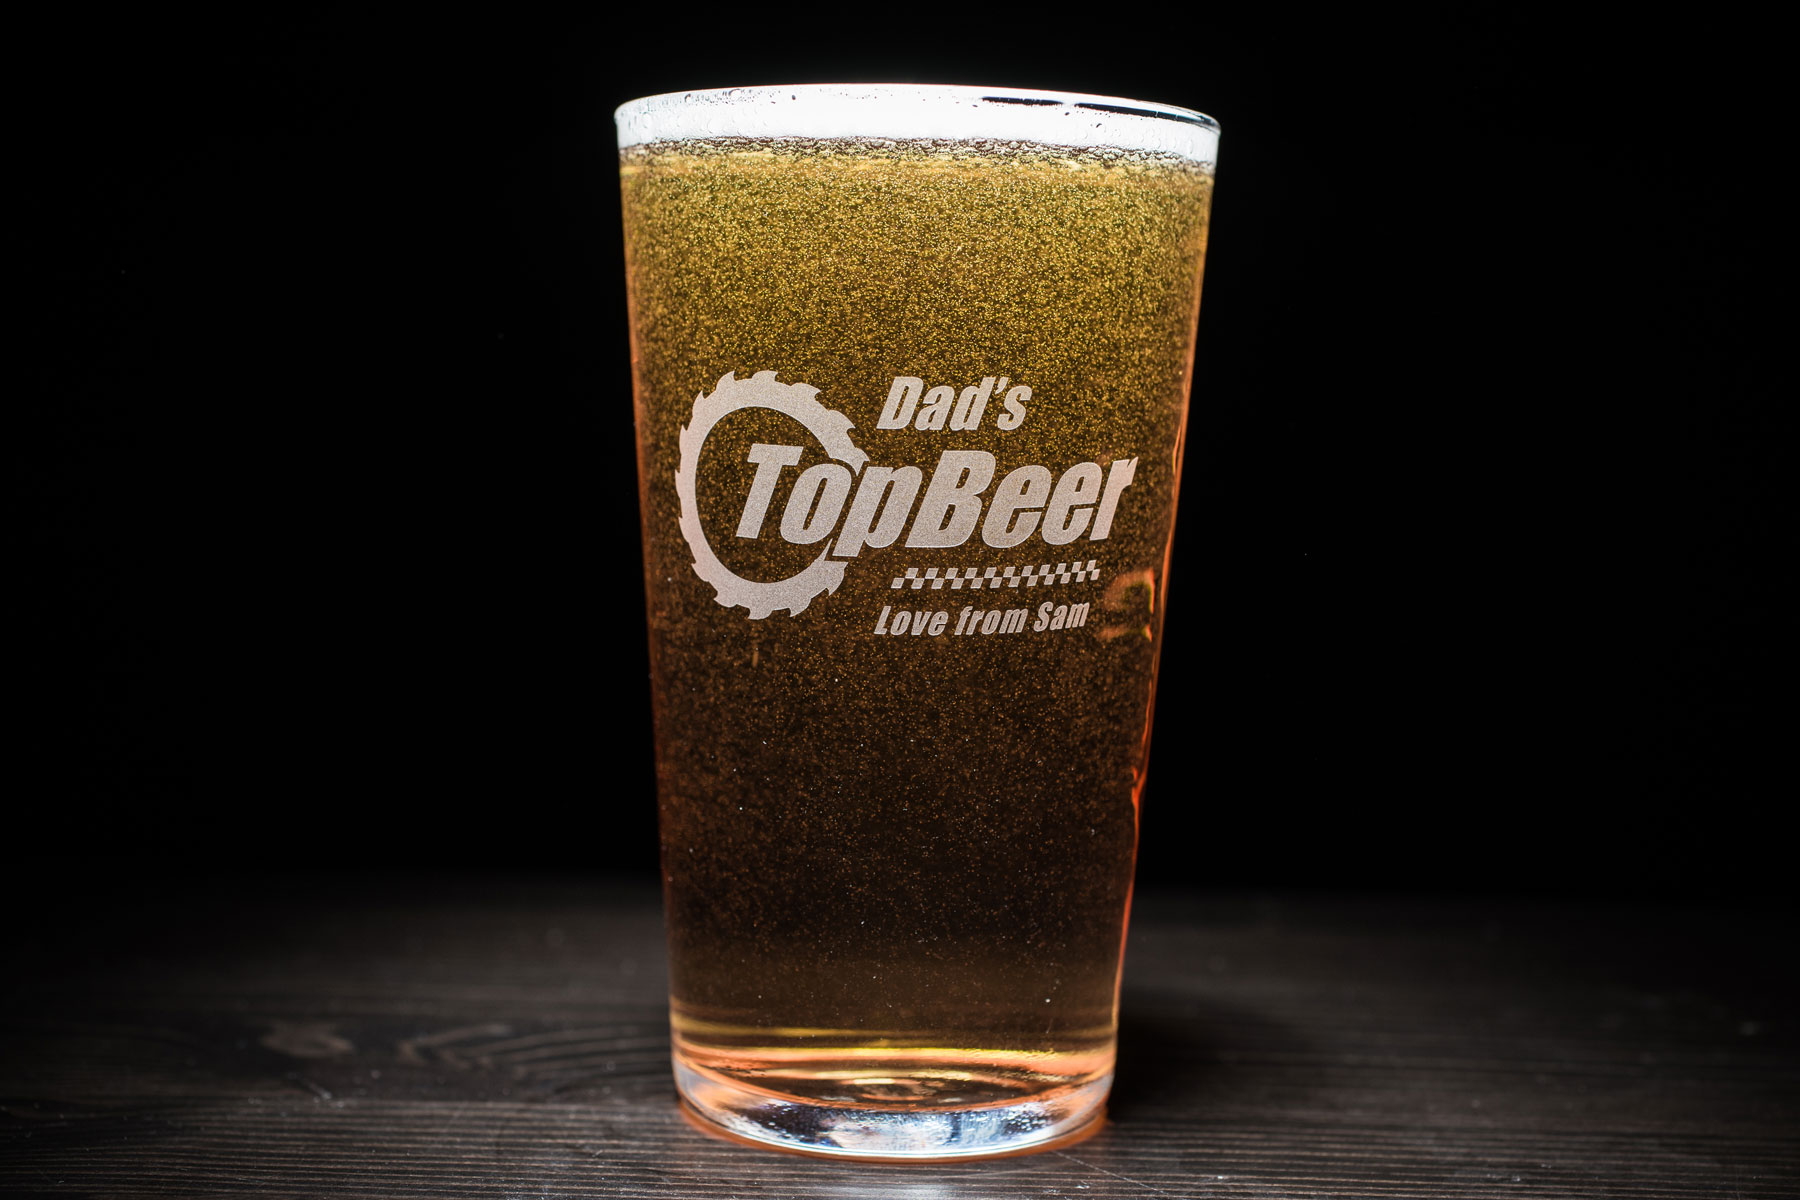 Personalised 'top beer' pint glass: £8.99